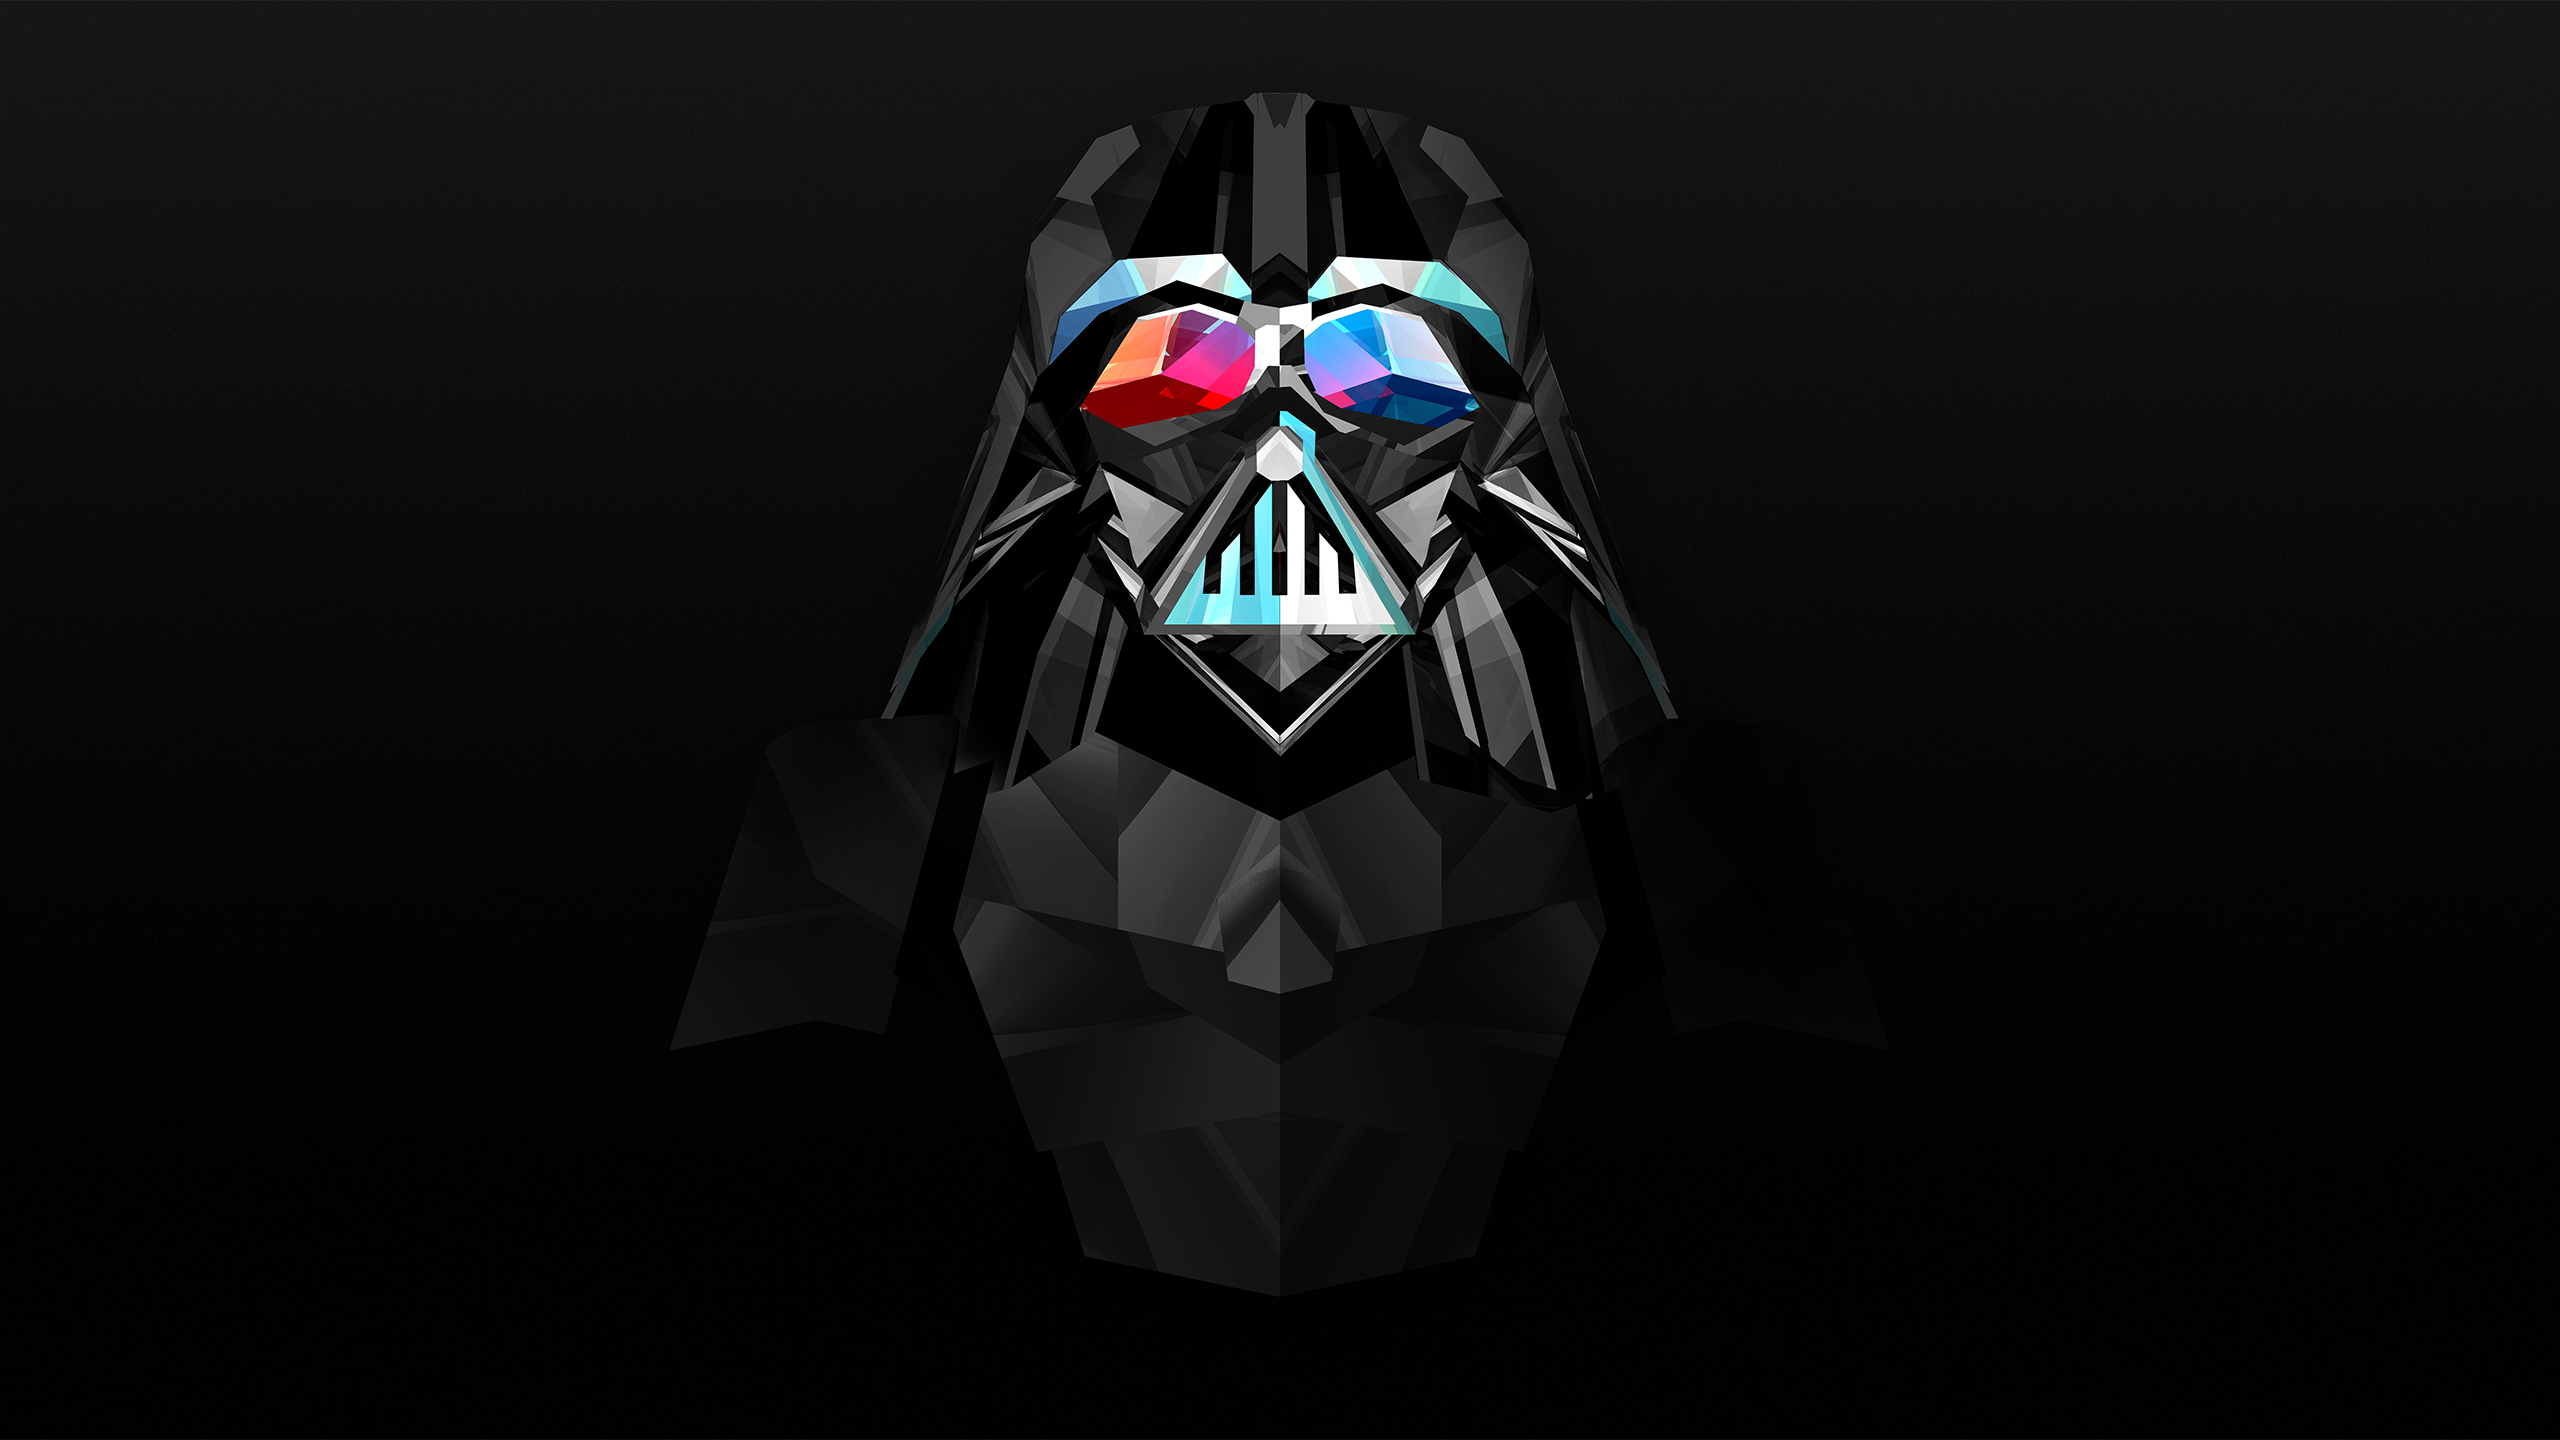 Dark_Lord-darth-vader-wallpaper